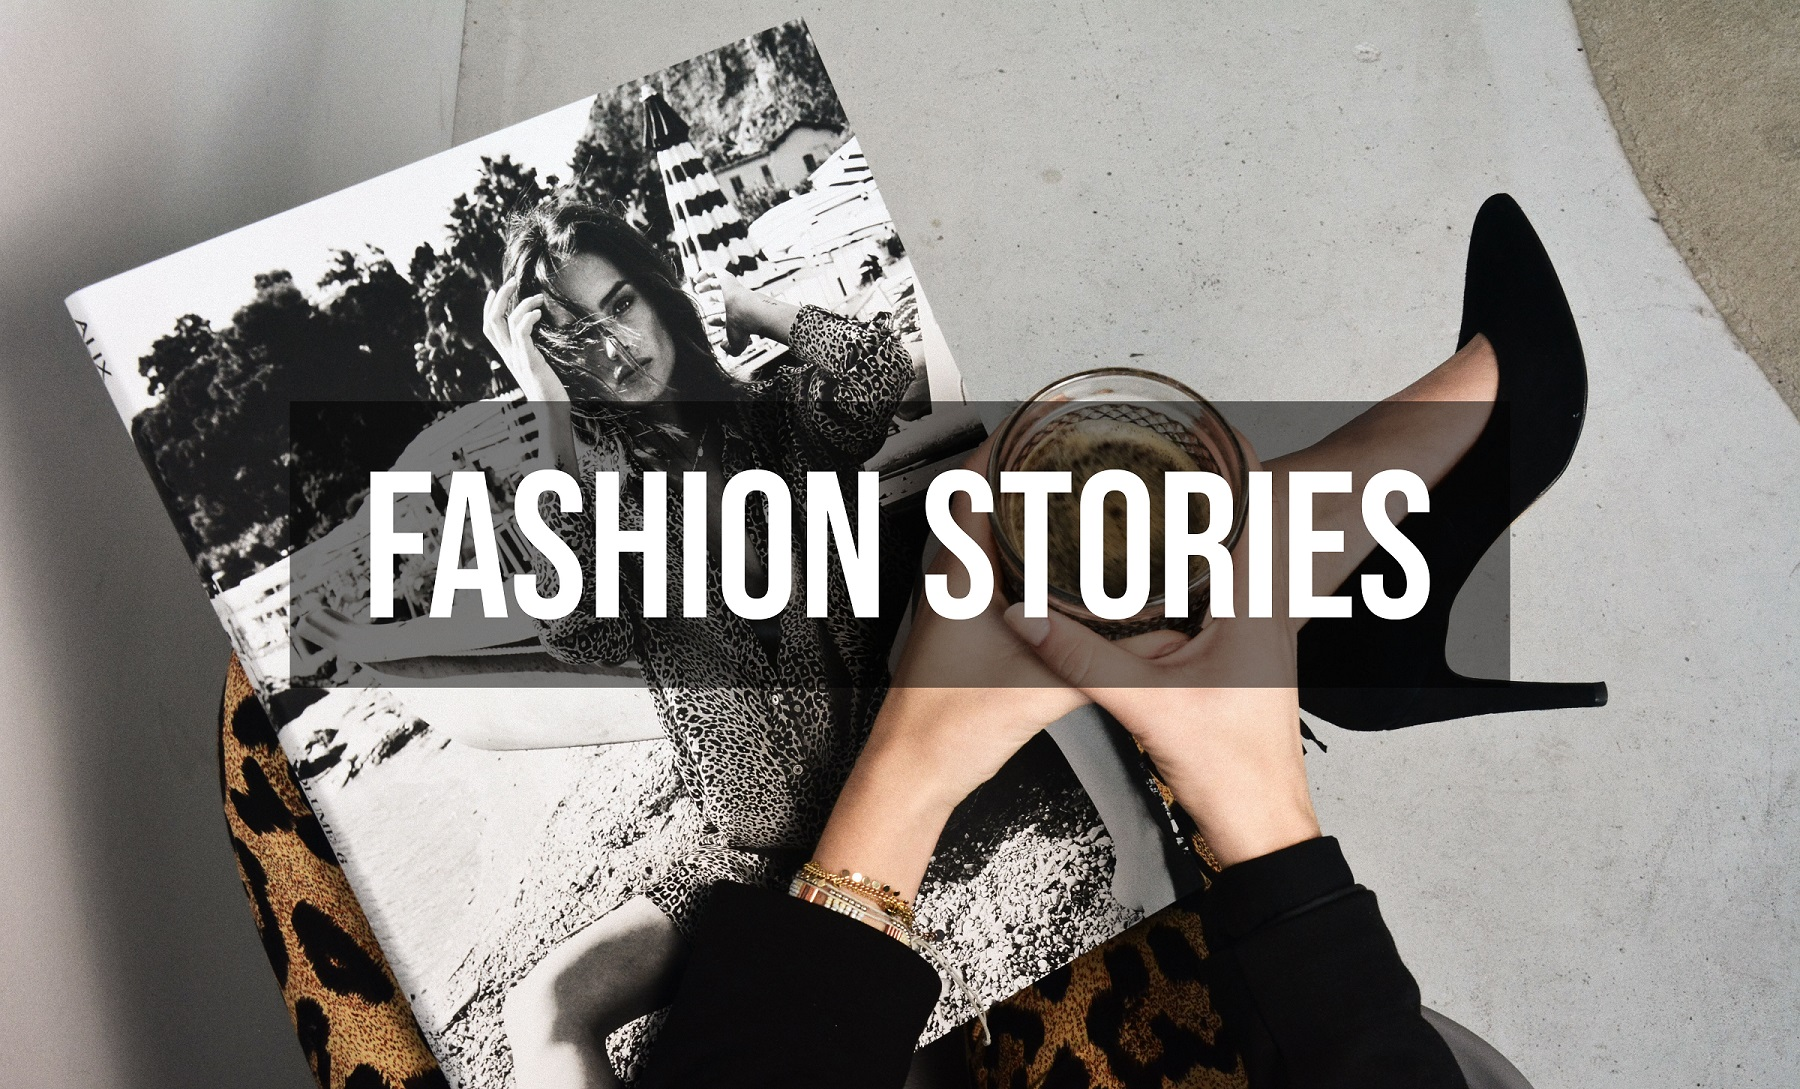 Fashion Stories - The Fashion Folks